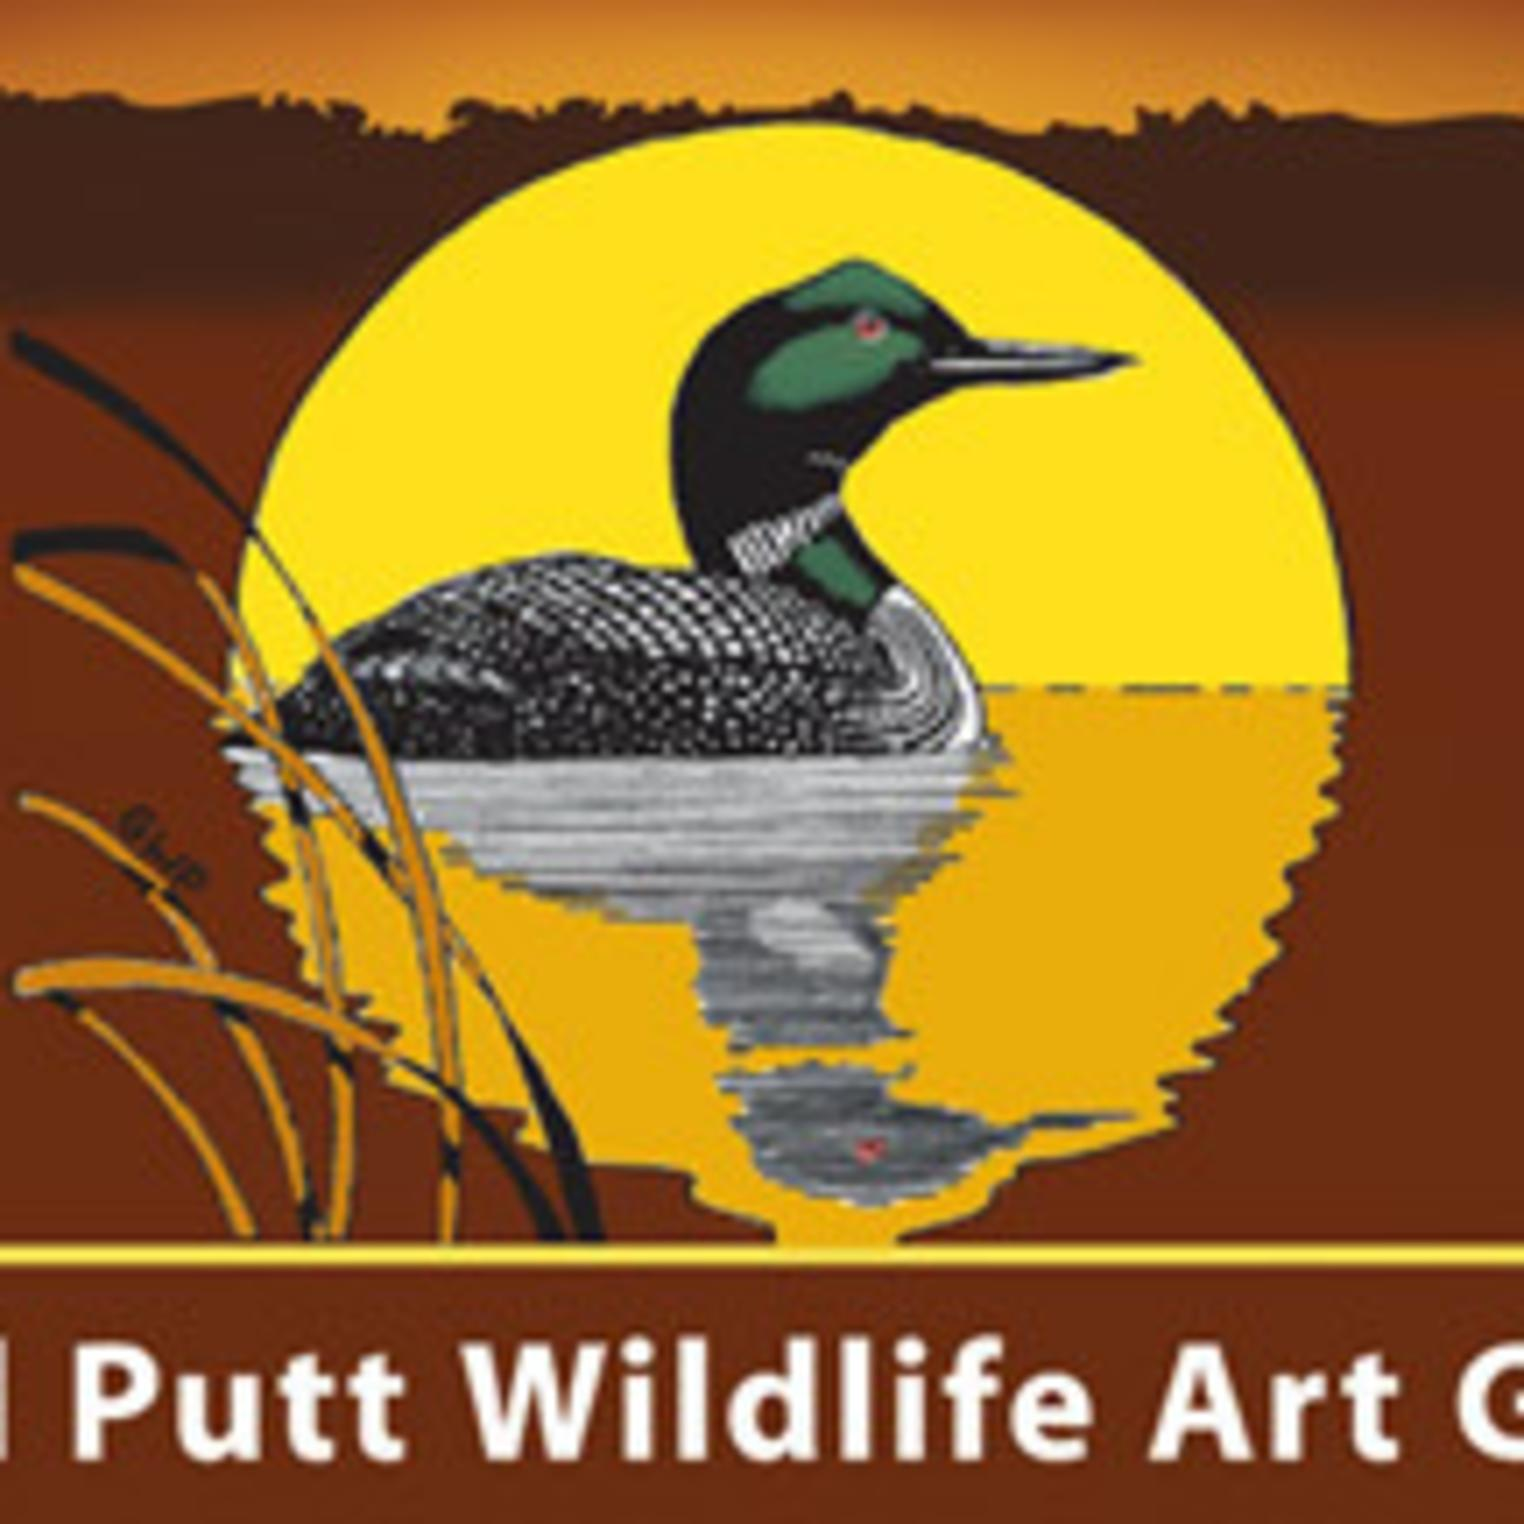 Gerald Putt Wildlife Art Studio